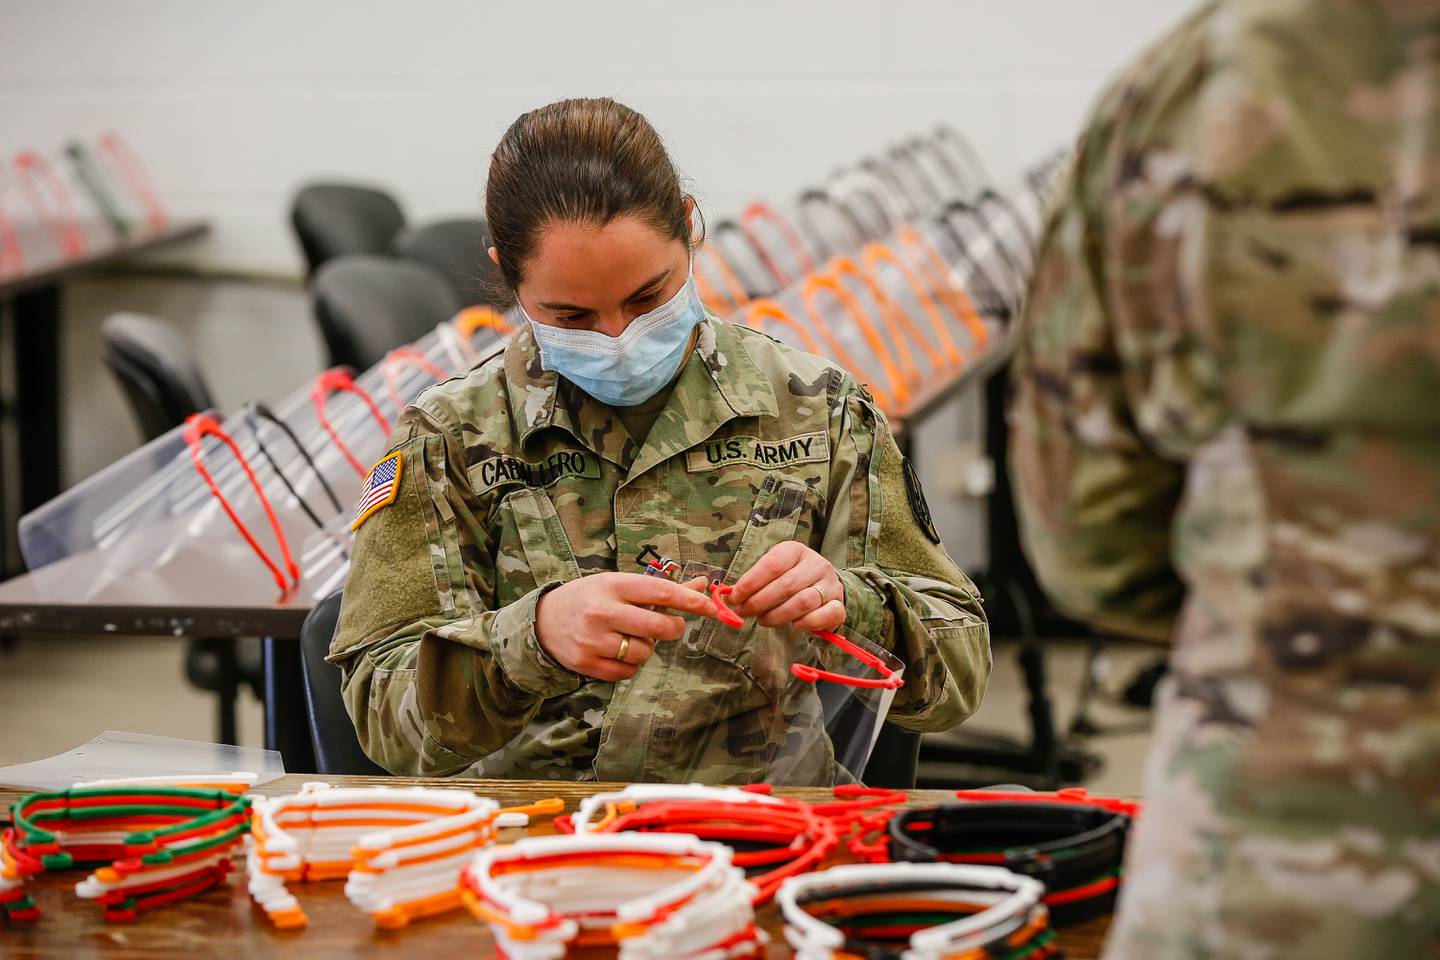 Operation Dragon Mask: XVIII Airborne Corps Creates and Distributes Personal Protective Equipment